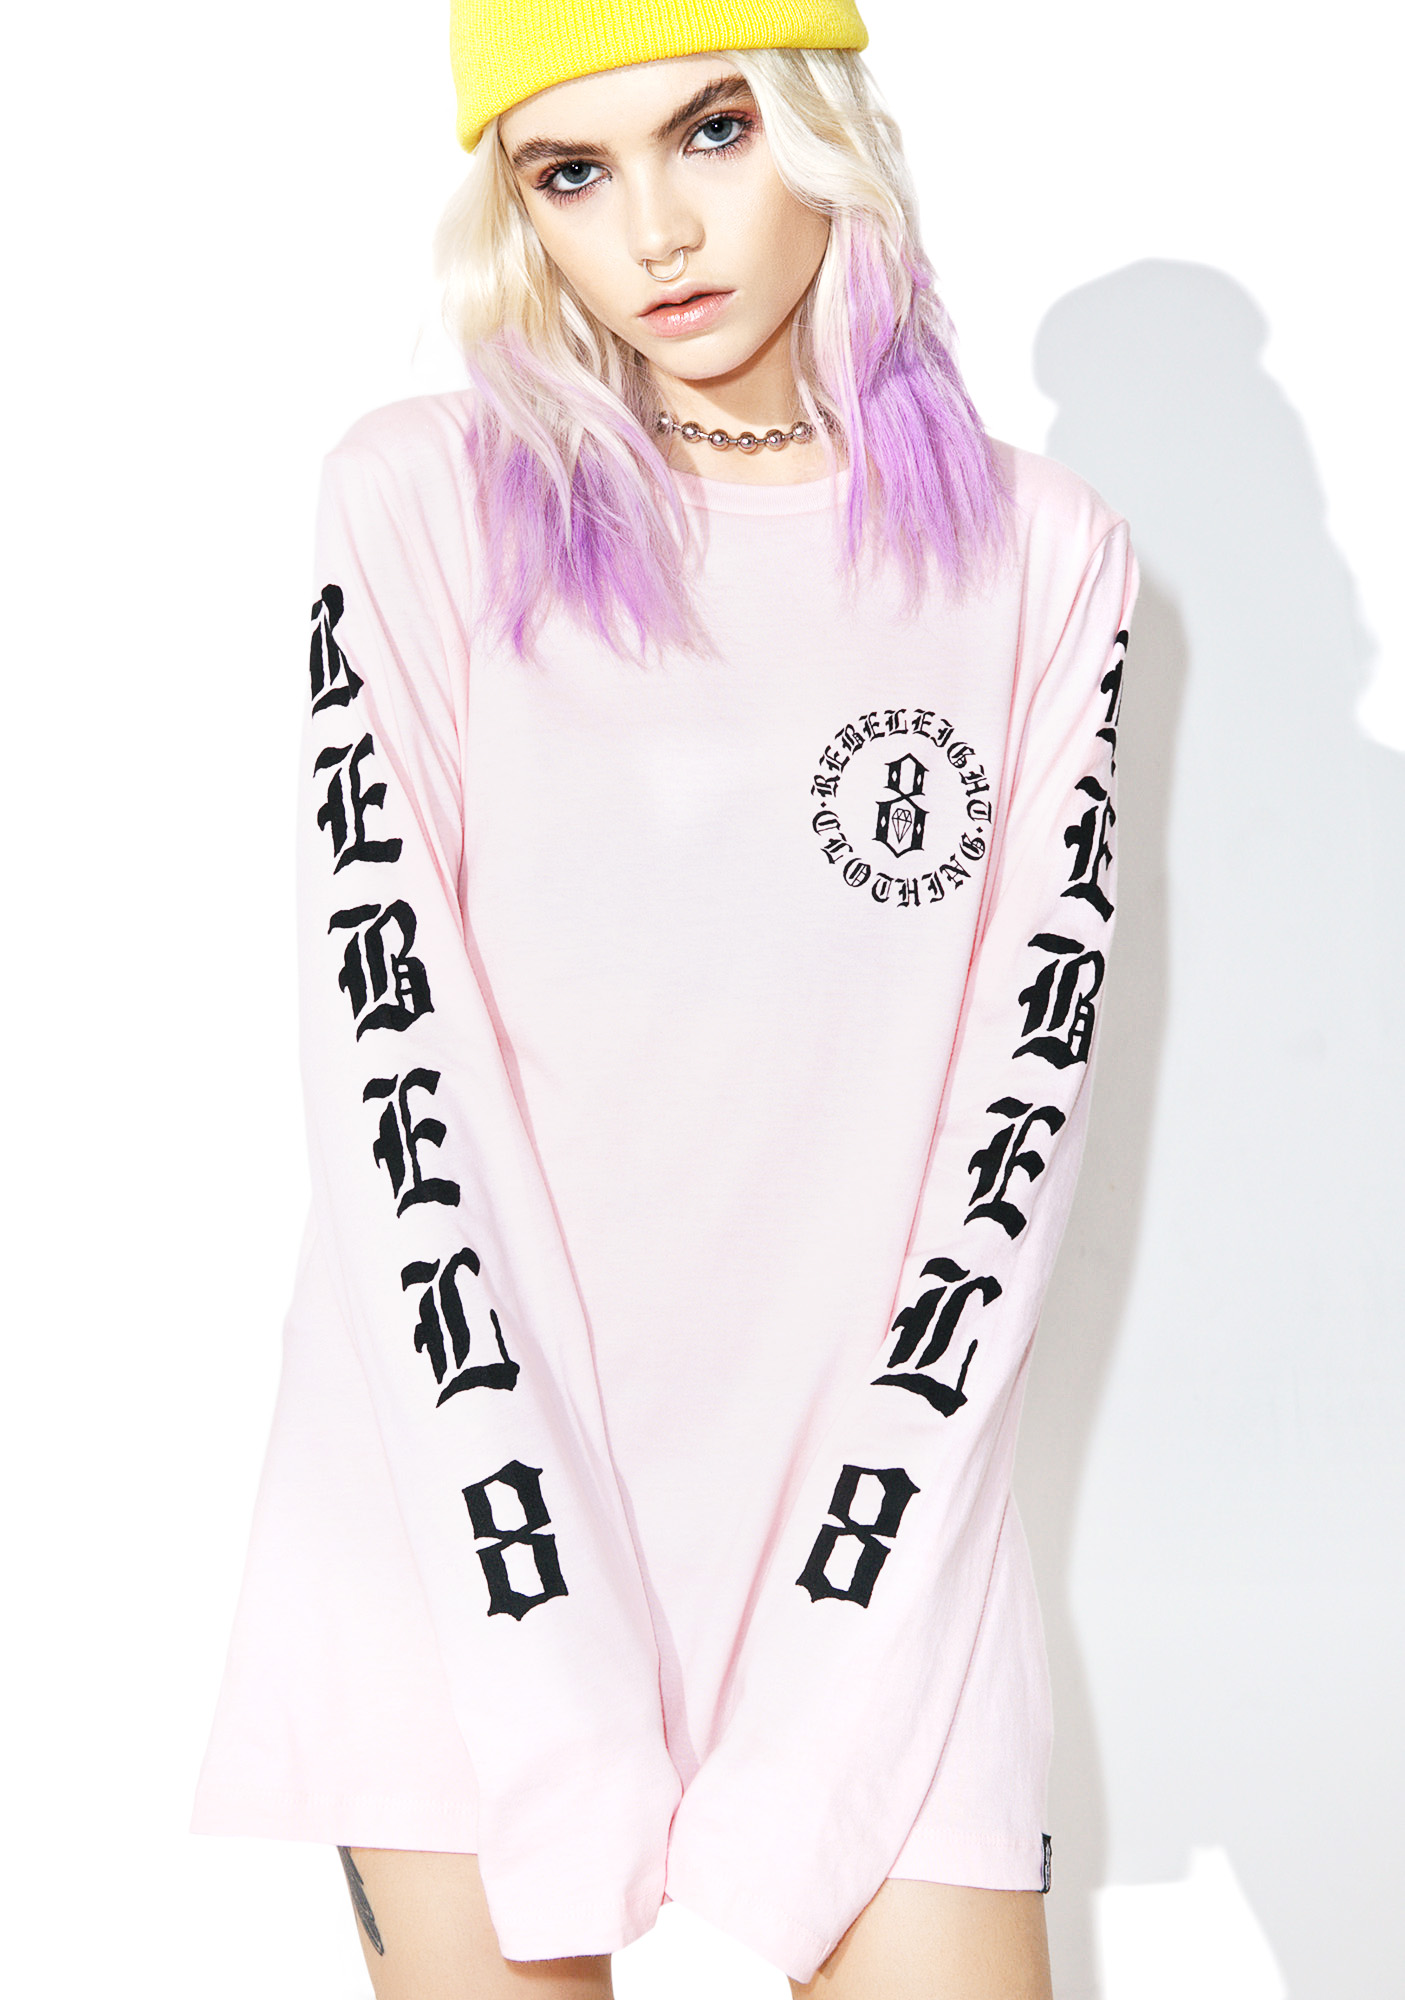 Rebel8 Immortals Pink Long Sleeve Tee